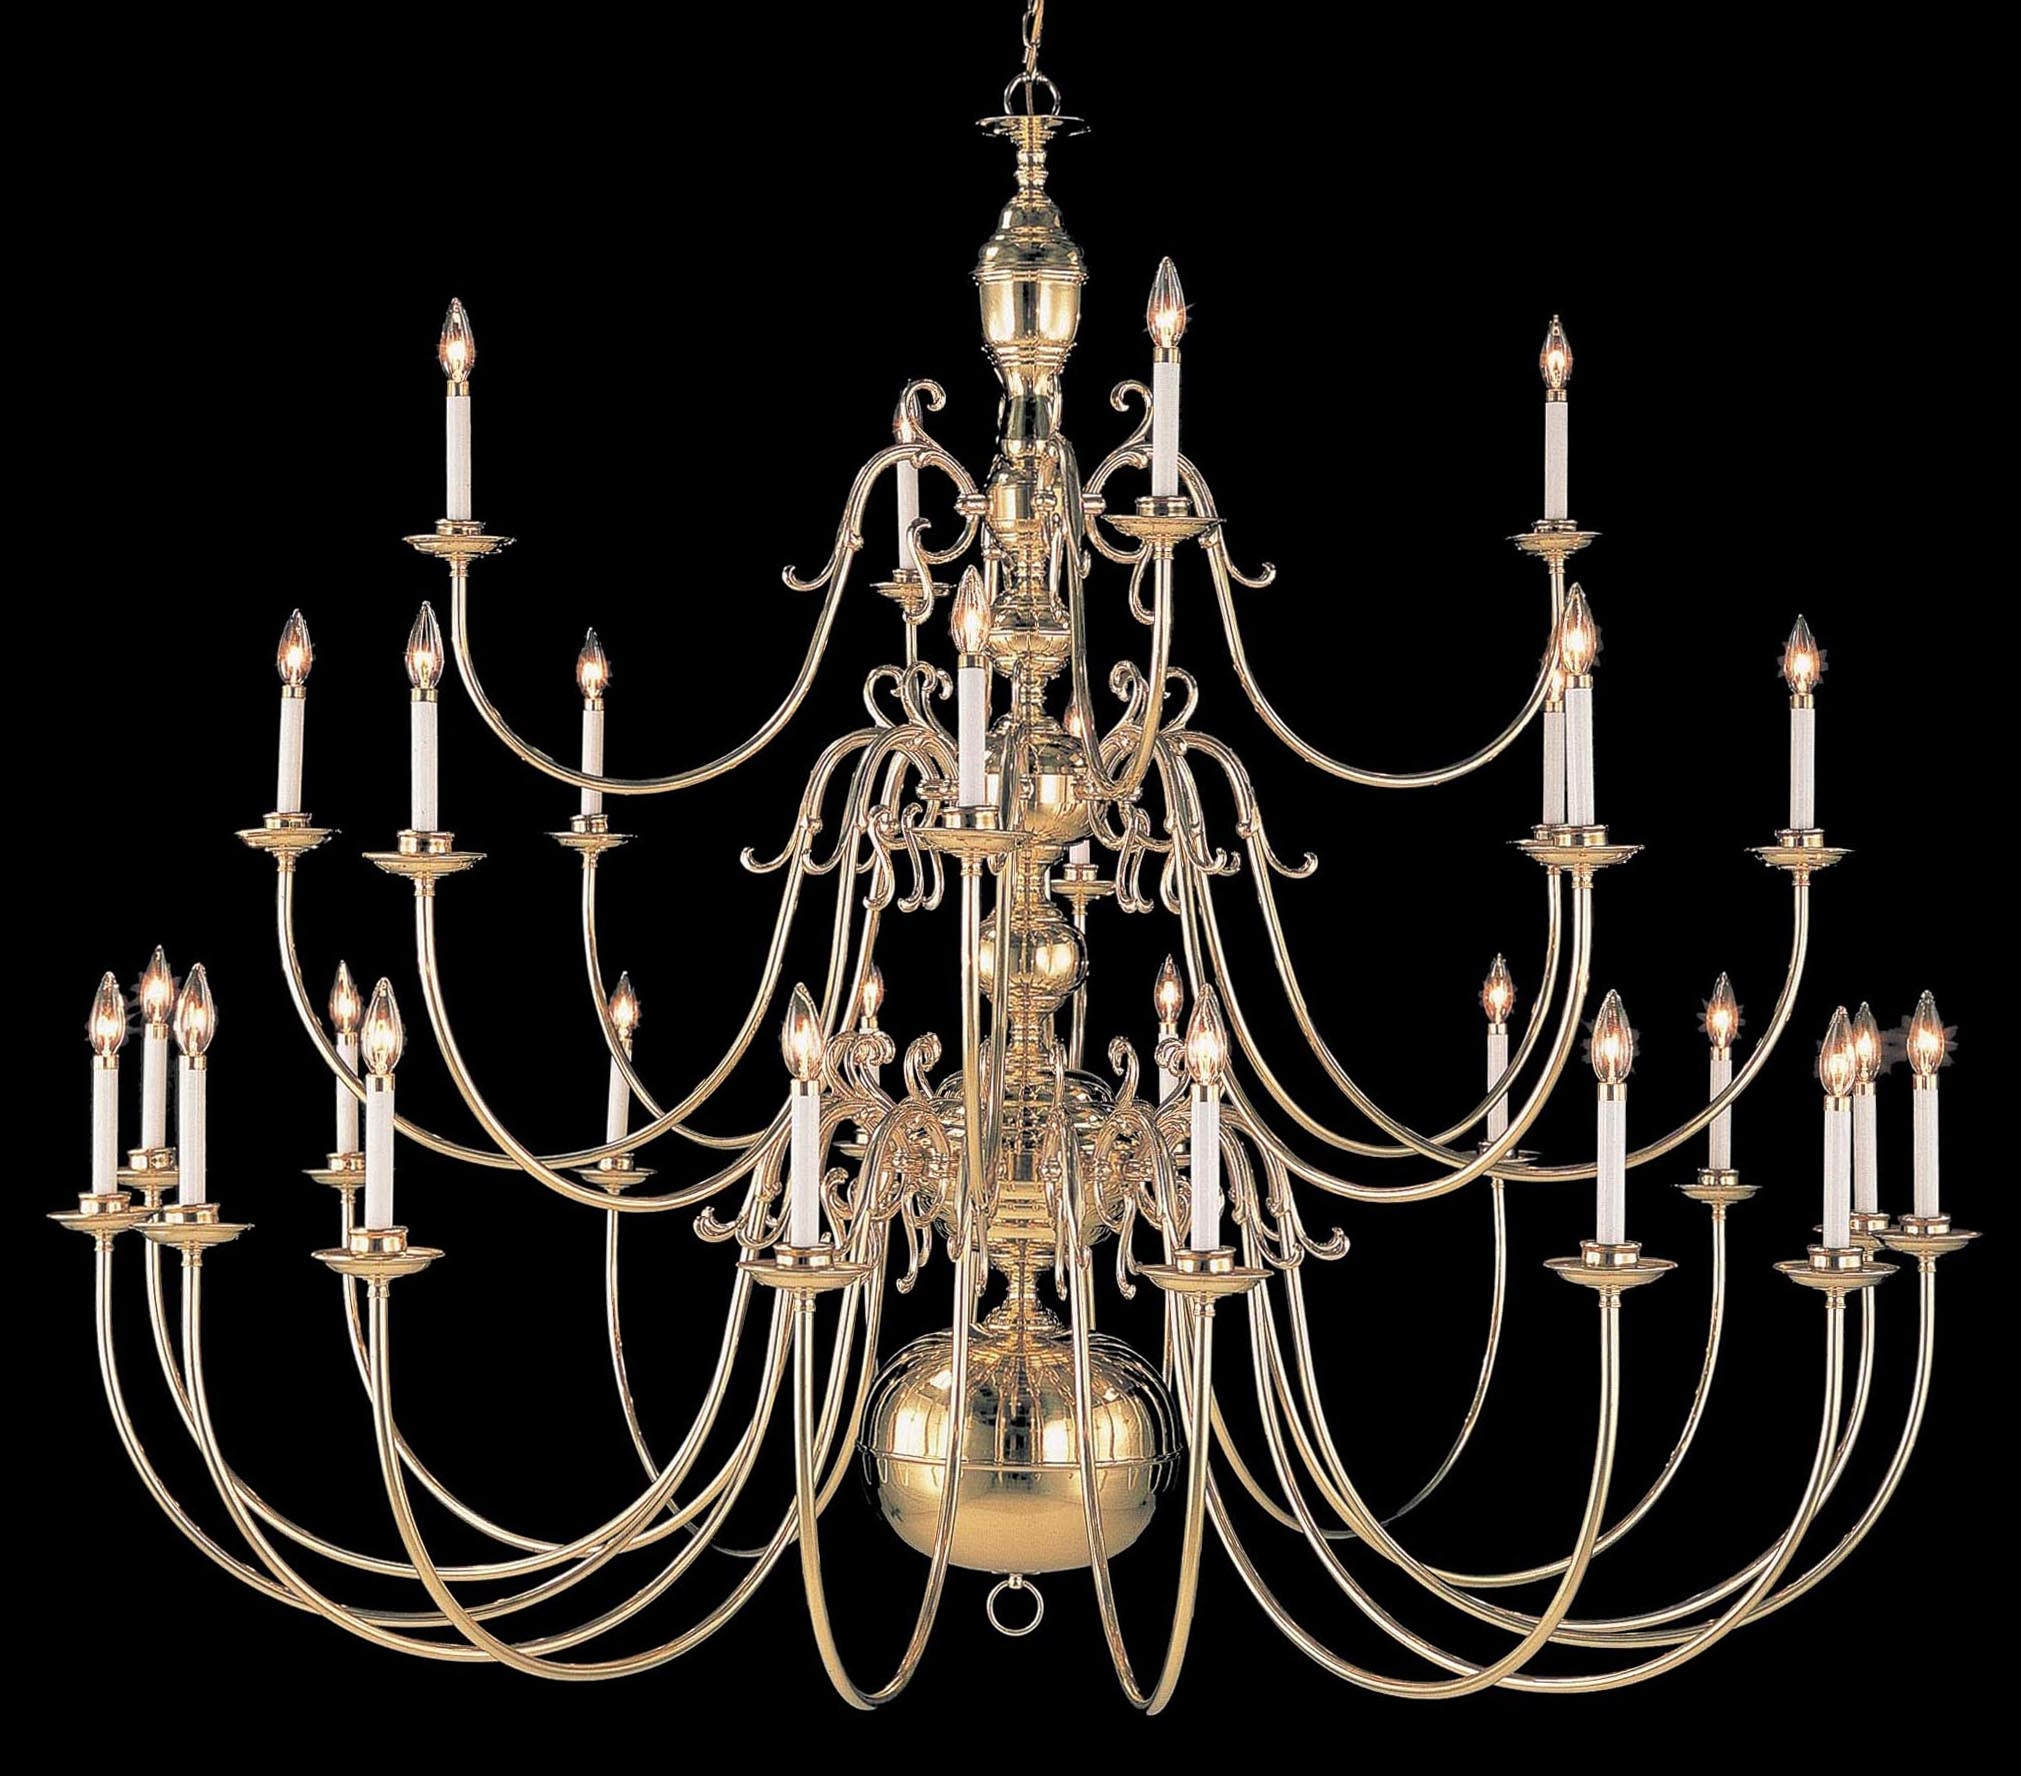 Largelighting Brassbronze Chandeliers Within Large Bronze Chandelier (#11 of 12)